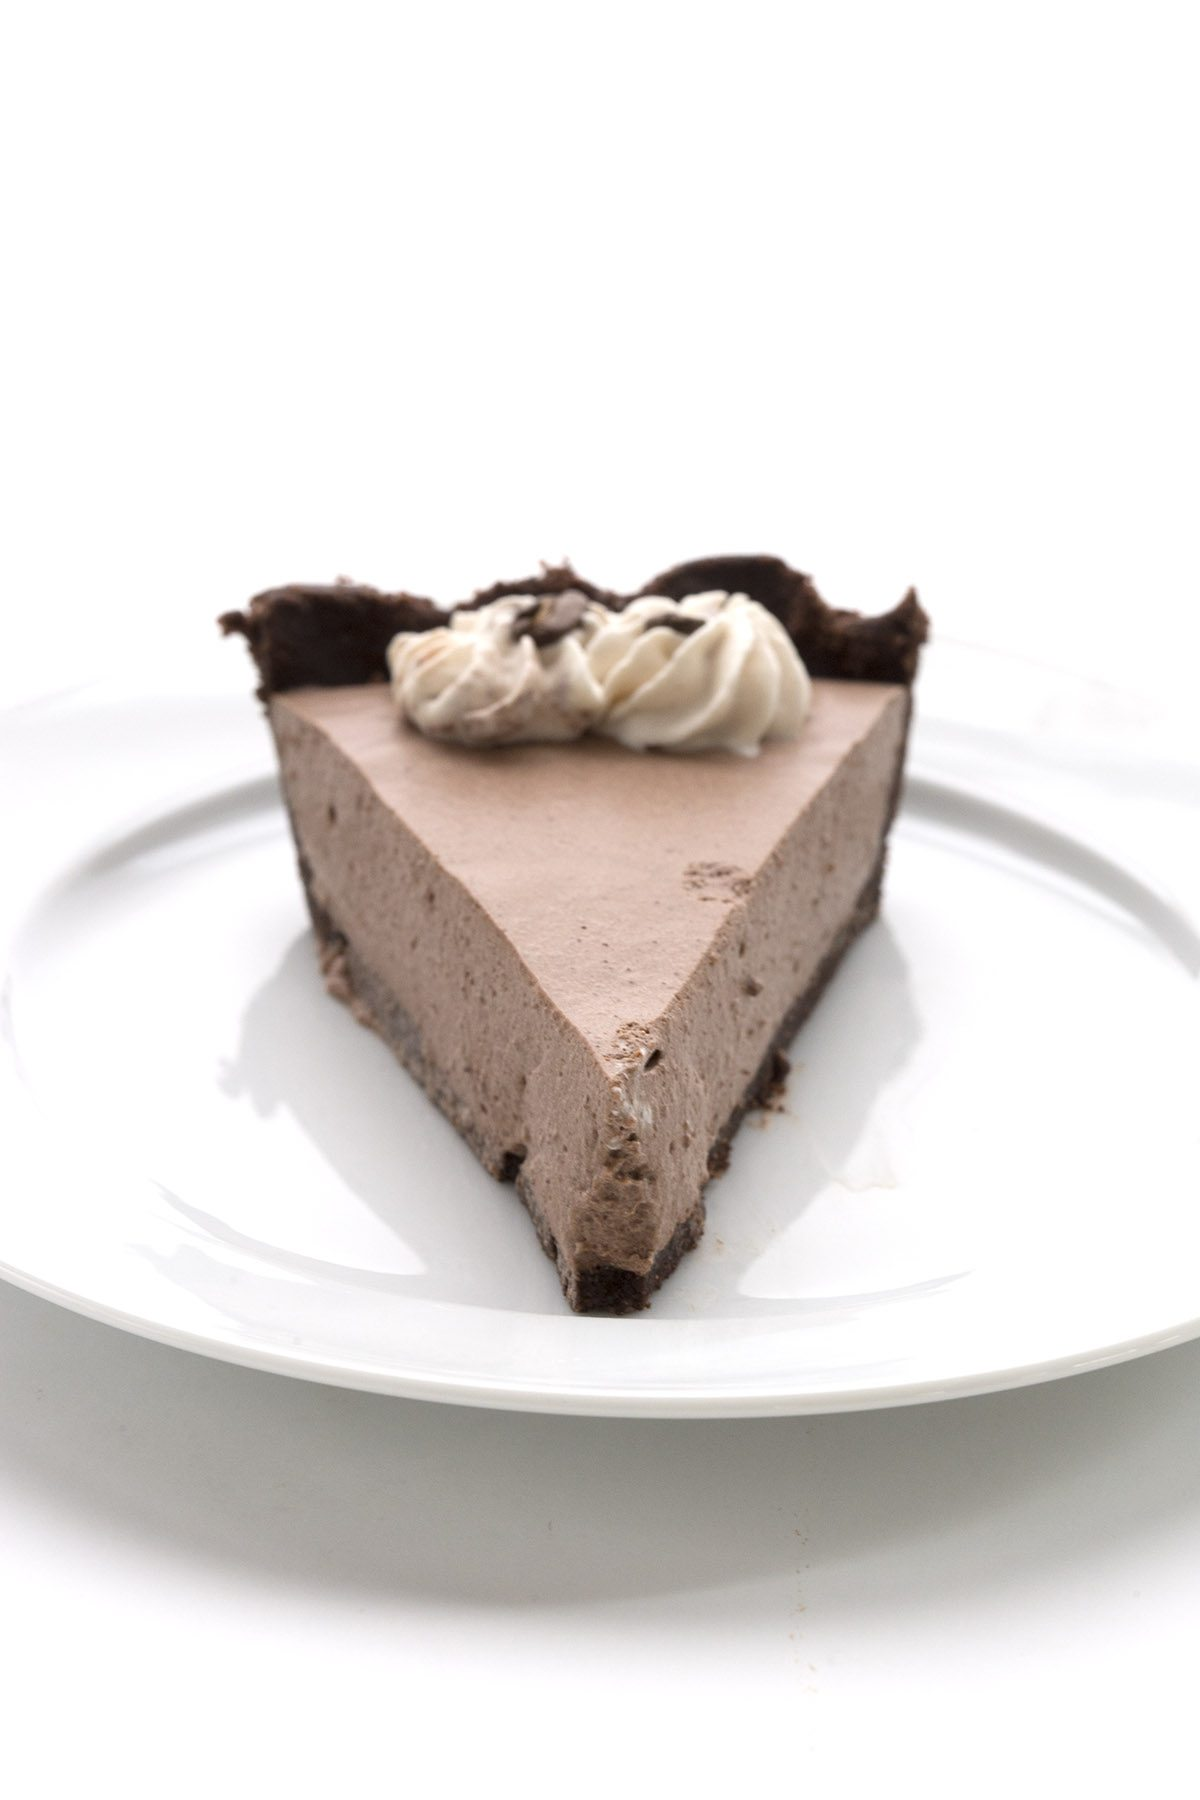 Keto Mocha Cream Pie Recipe